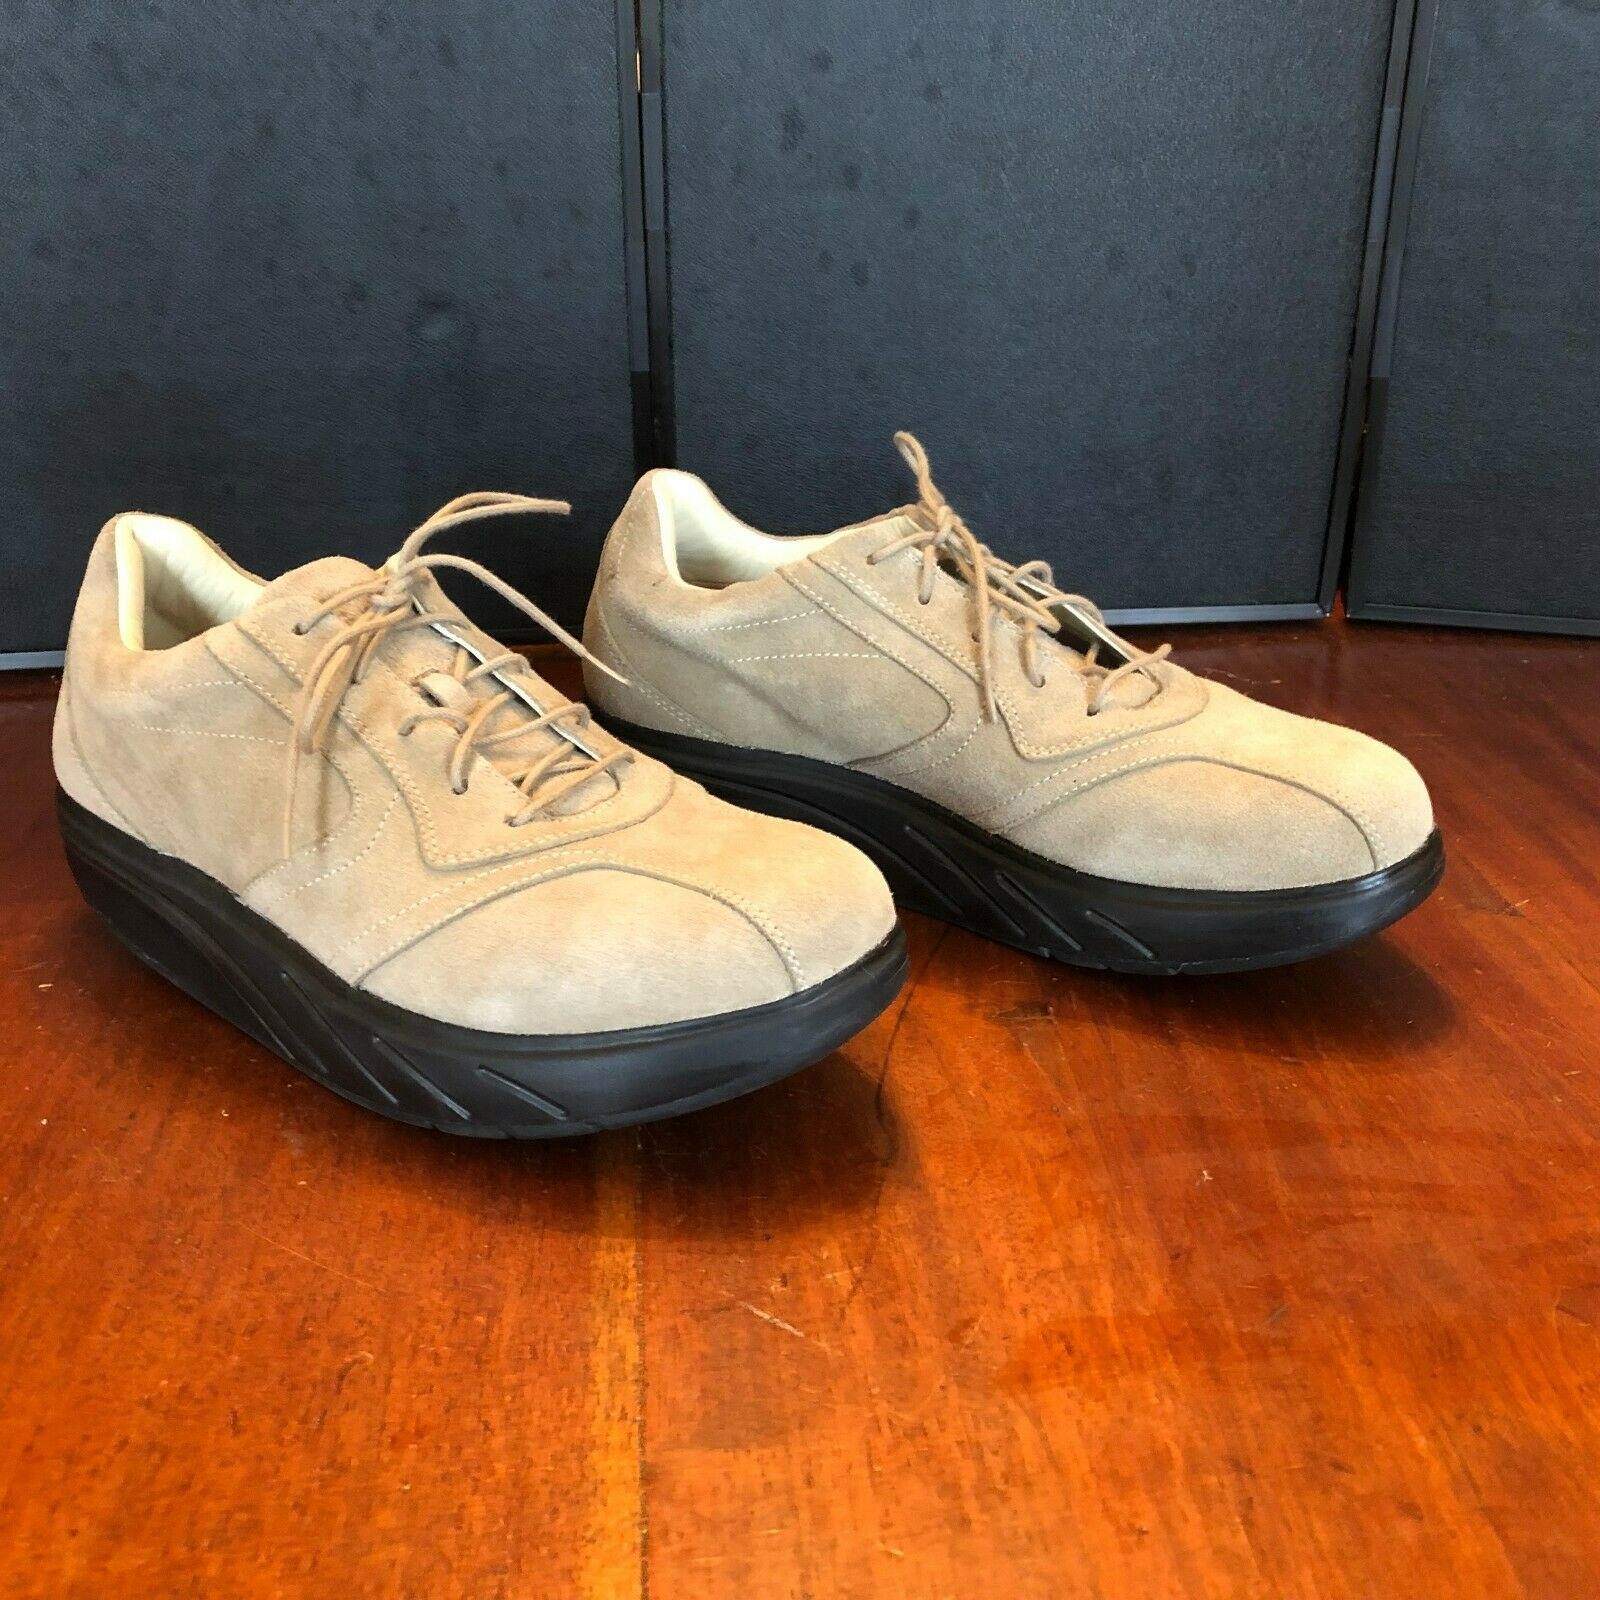 MBT 'Beach' Tan Suede Leather Fitness Toning Walking shoes Women's Sz. 9.5 W